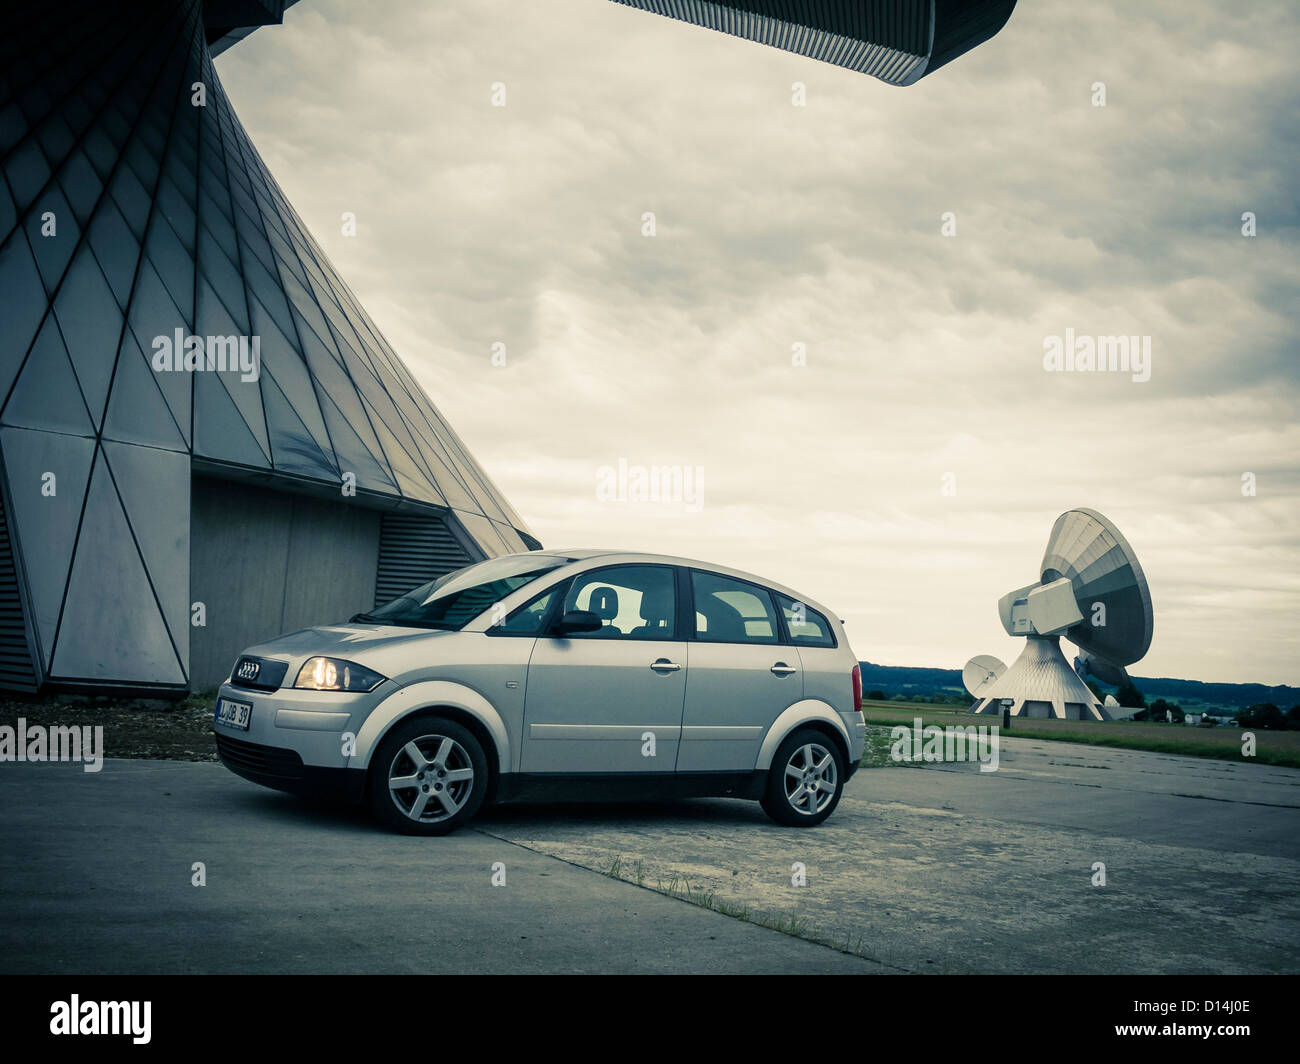 Audi A2 1,4 TDI Stock Photo